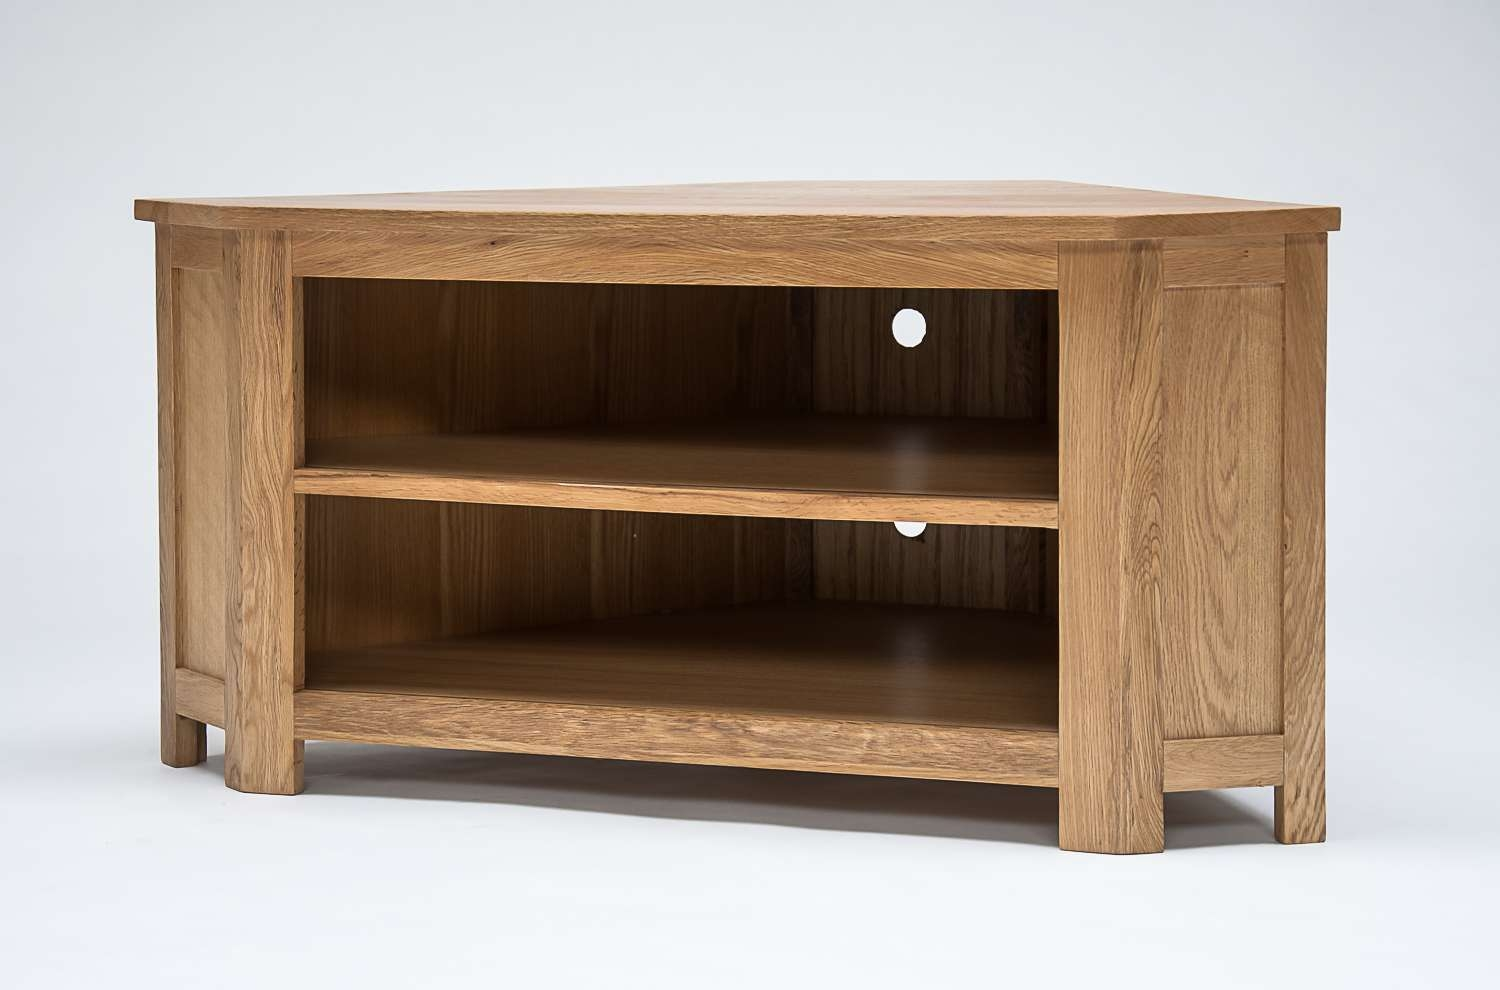 Lansdown Oak Low Corner Tv Cabinet | Oak Furniture Solutions For Corner Oak Tv Stands (View 5 of 15)